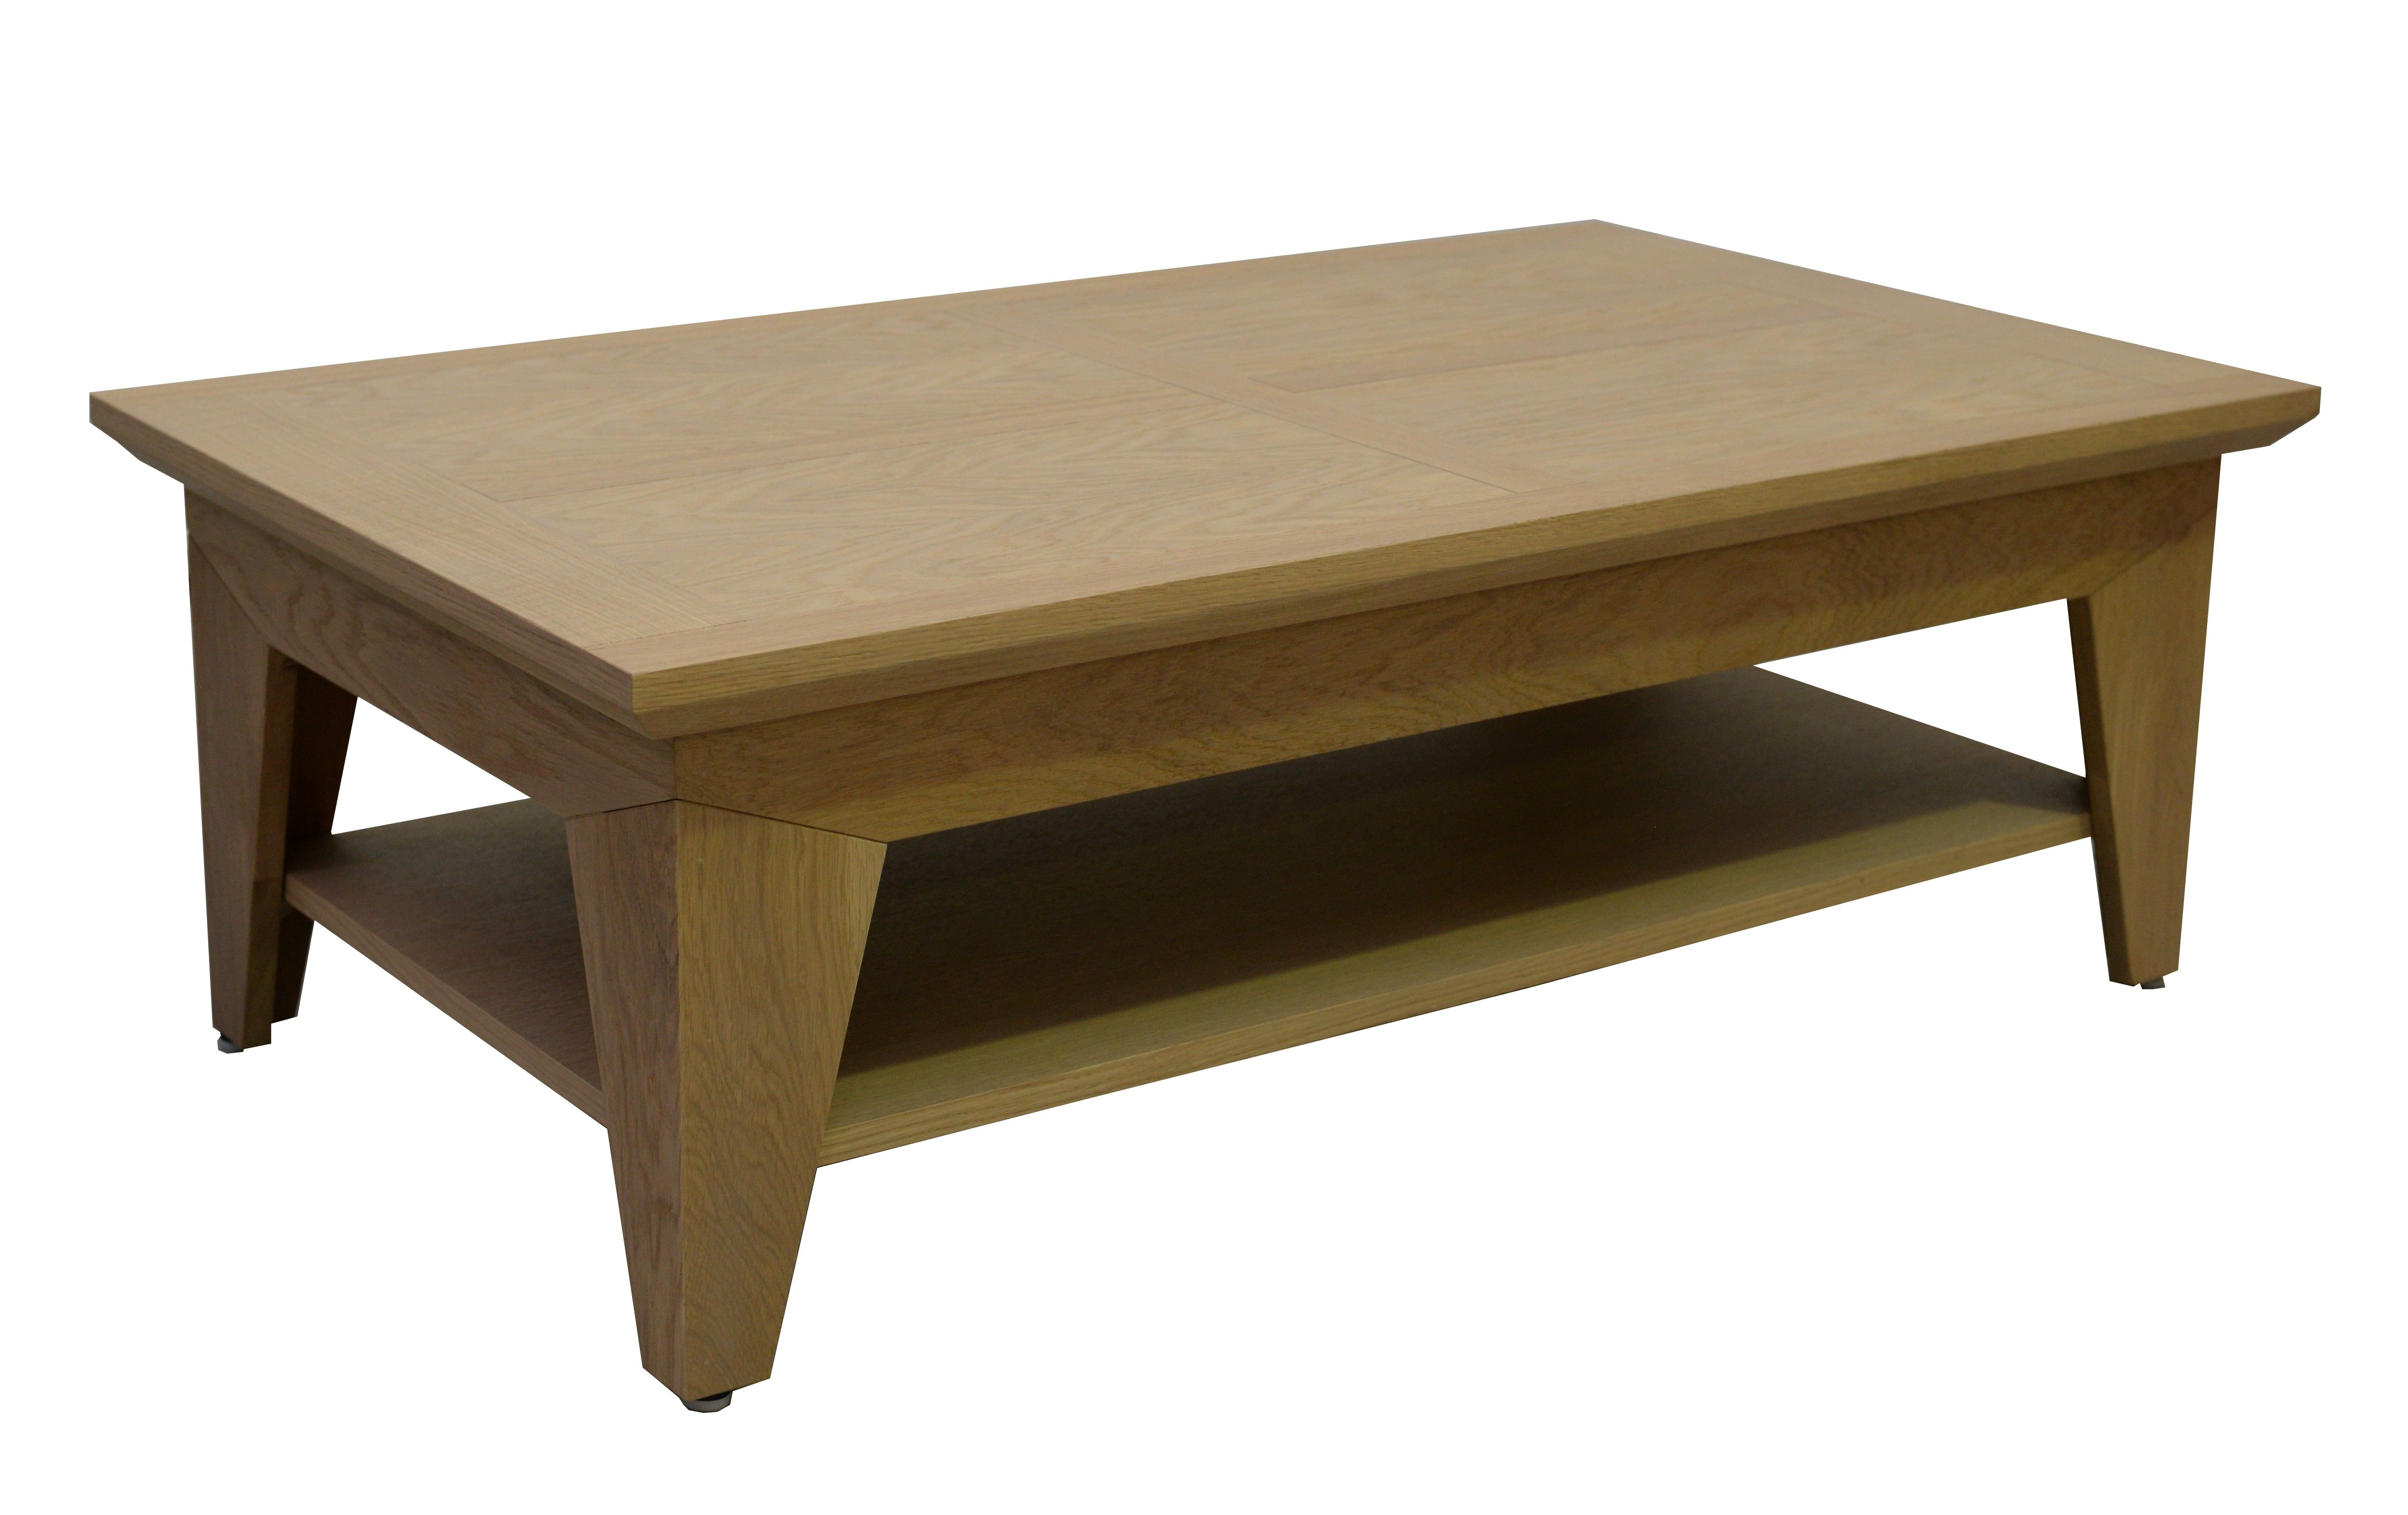 rectangle naturelle basse amande finition chic Table chêne CxWorBed